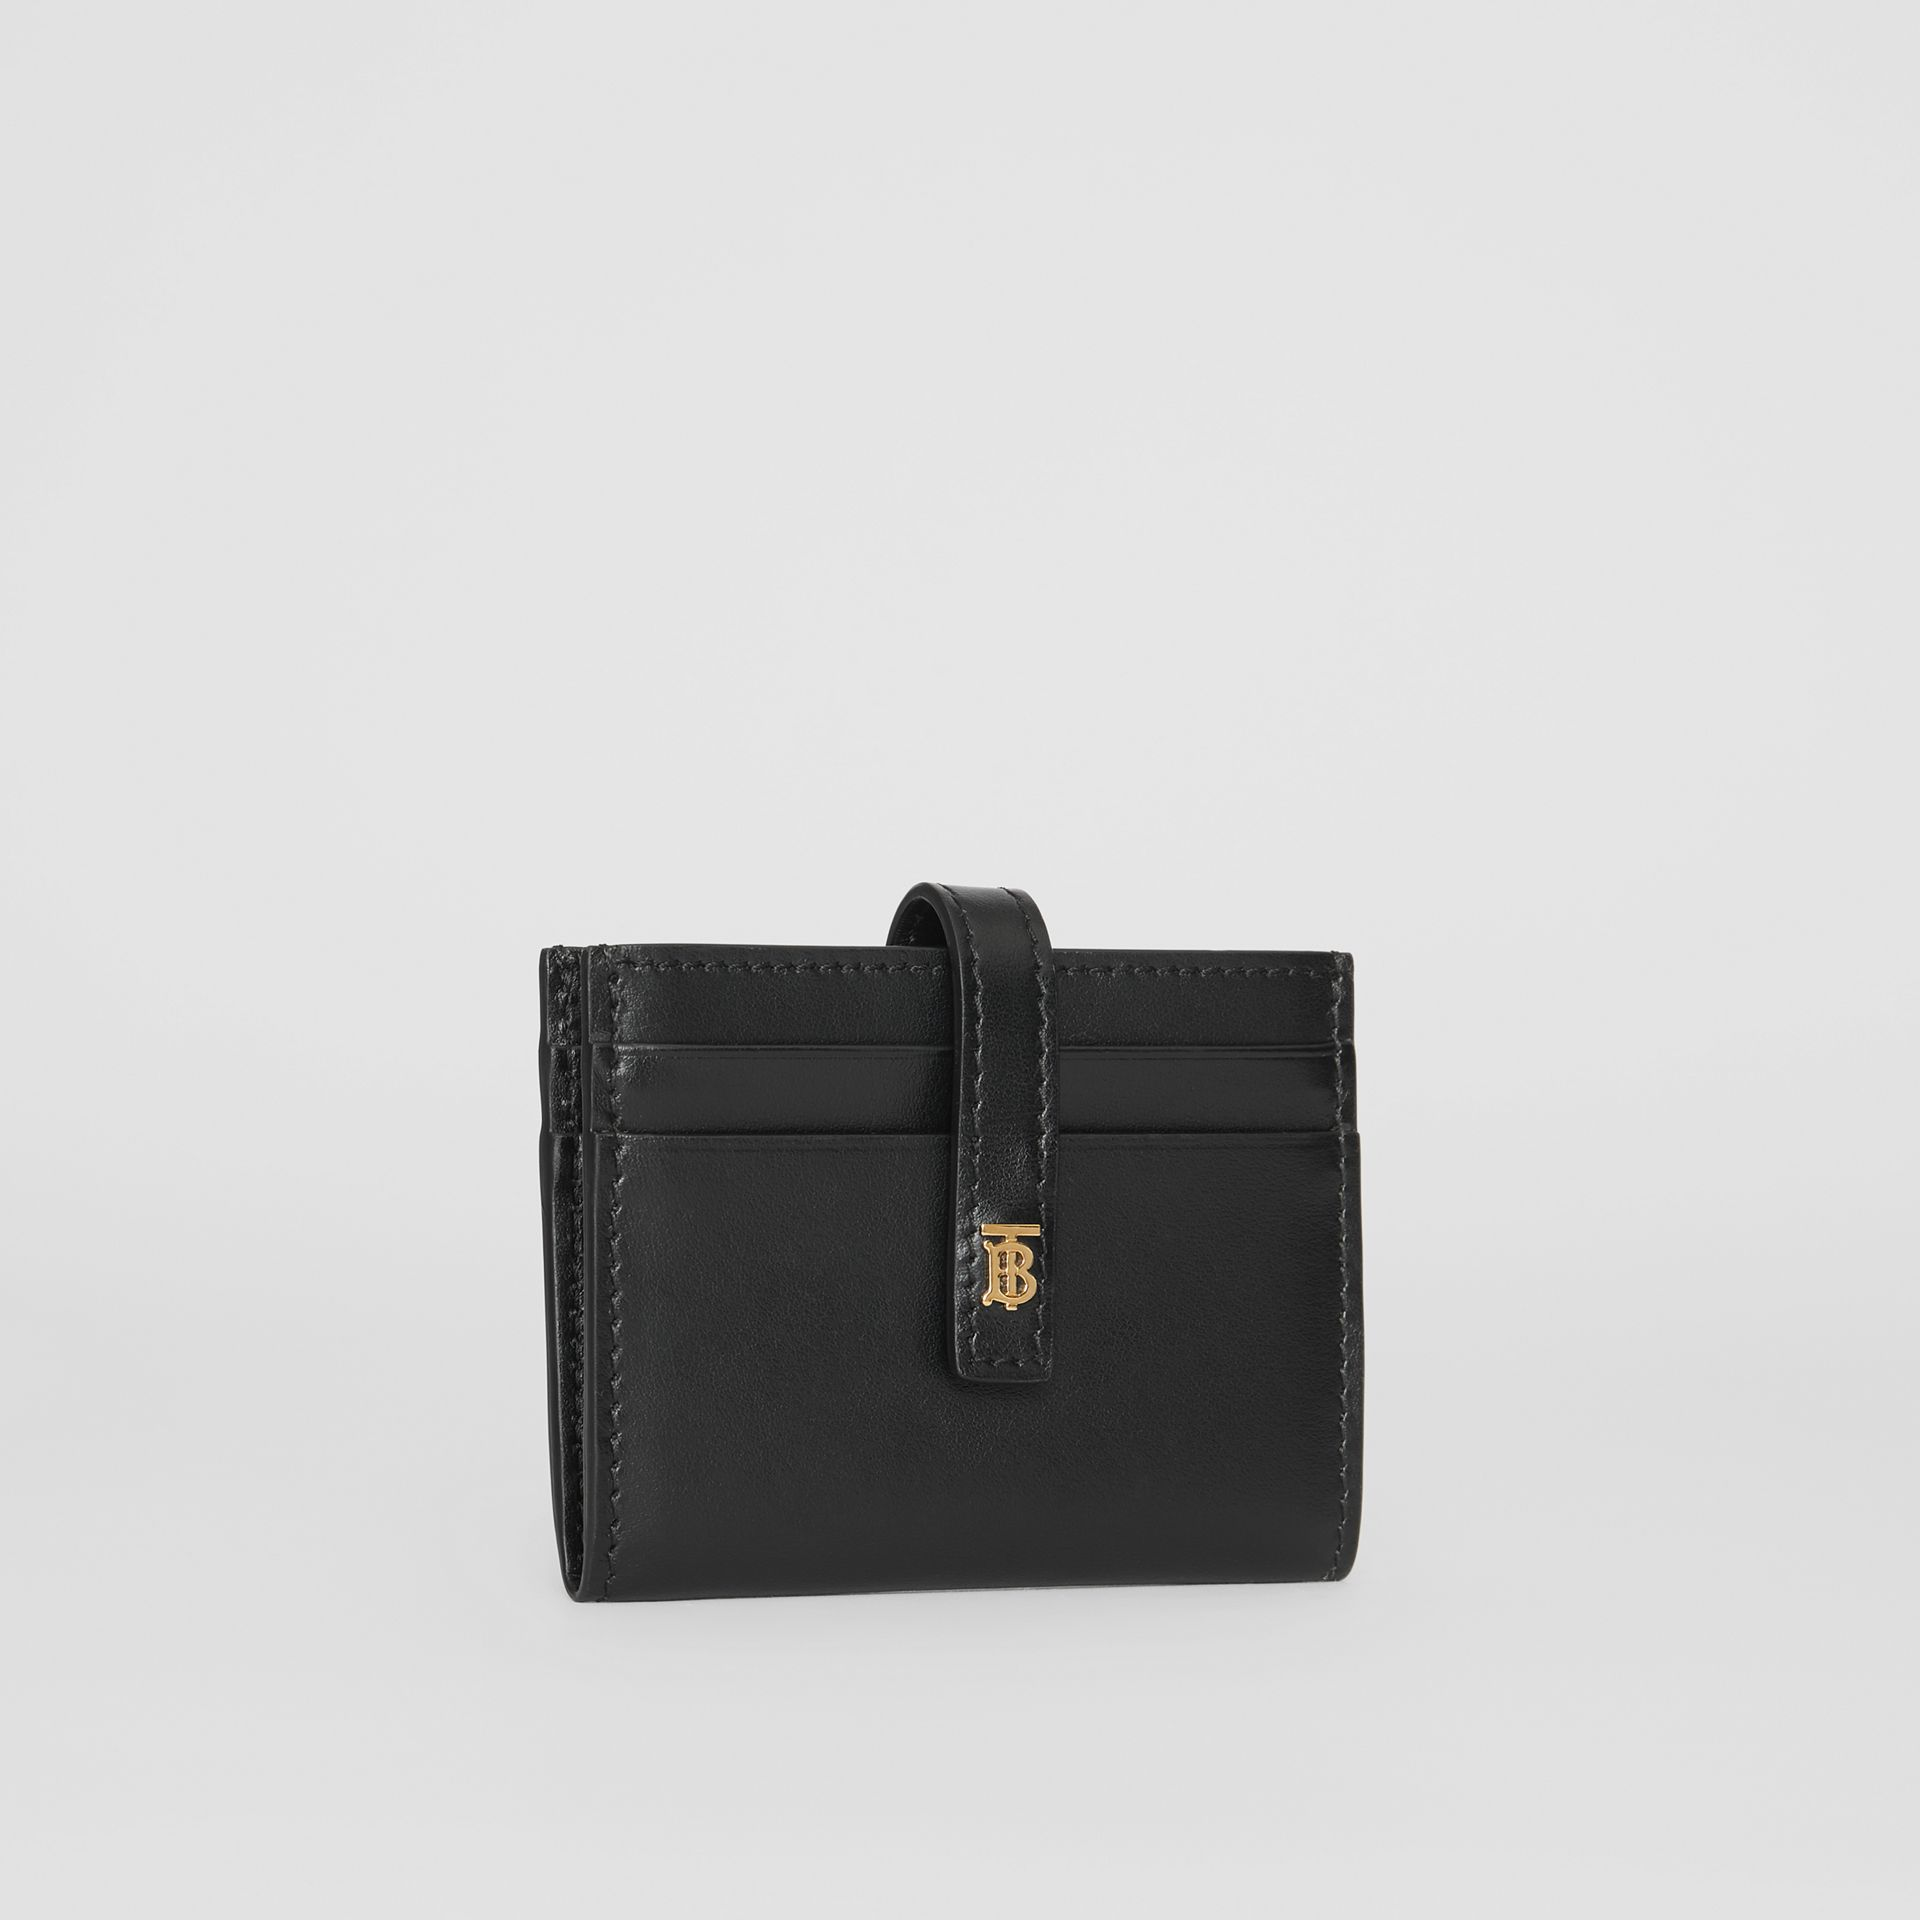 Monogram Motif Leather Folding Card Case in Black - Women | Burberry Singapore - gallery image 3